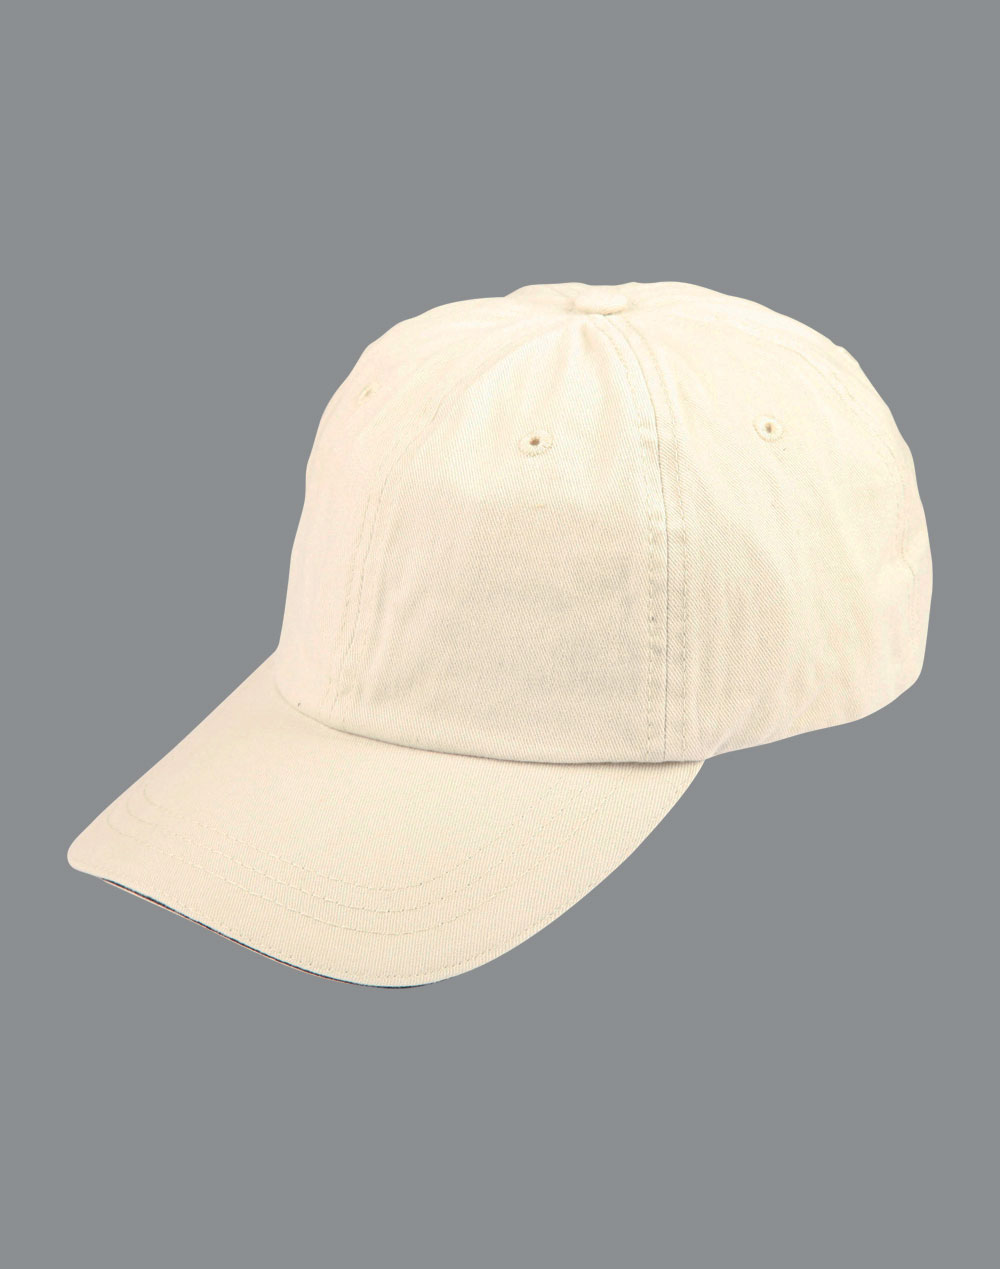 CH40 WASHED POLO SANDWICH CAP